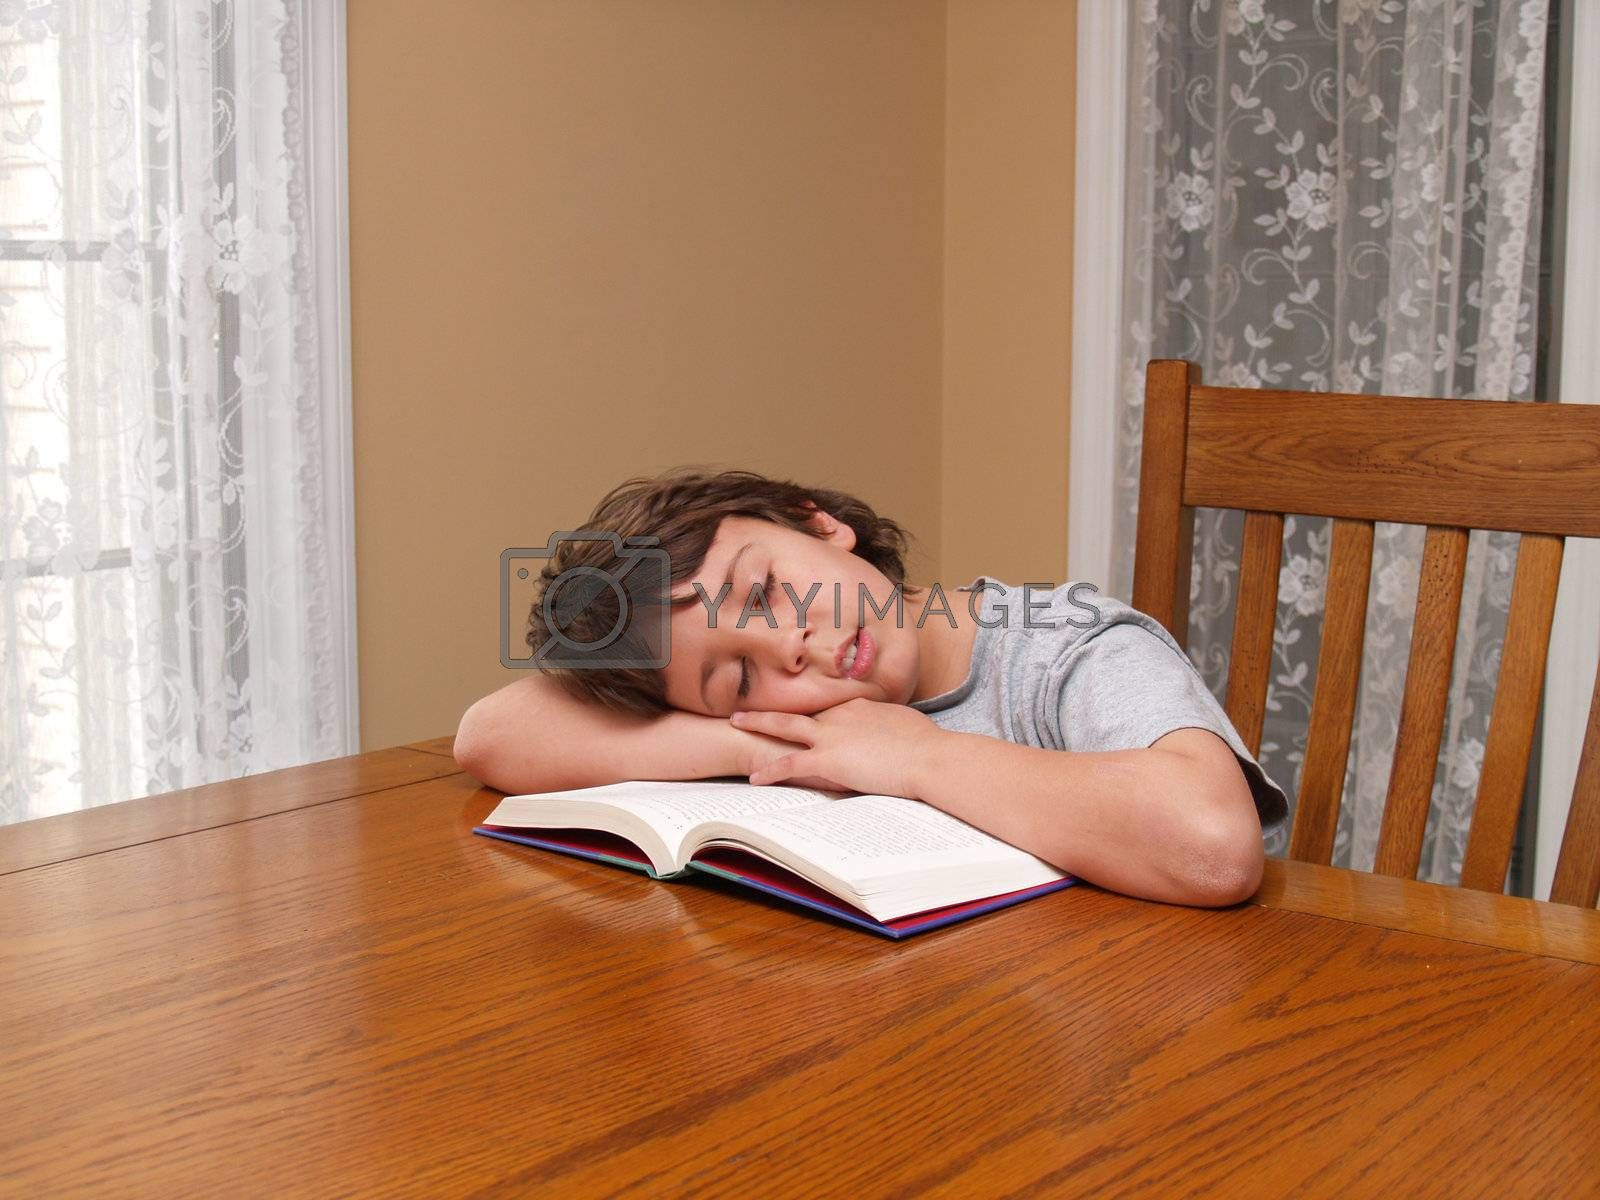 young boy who fell asleep while reading a book